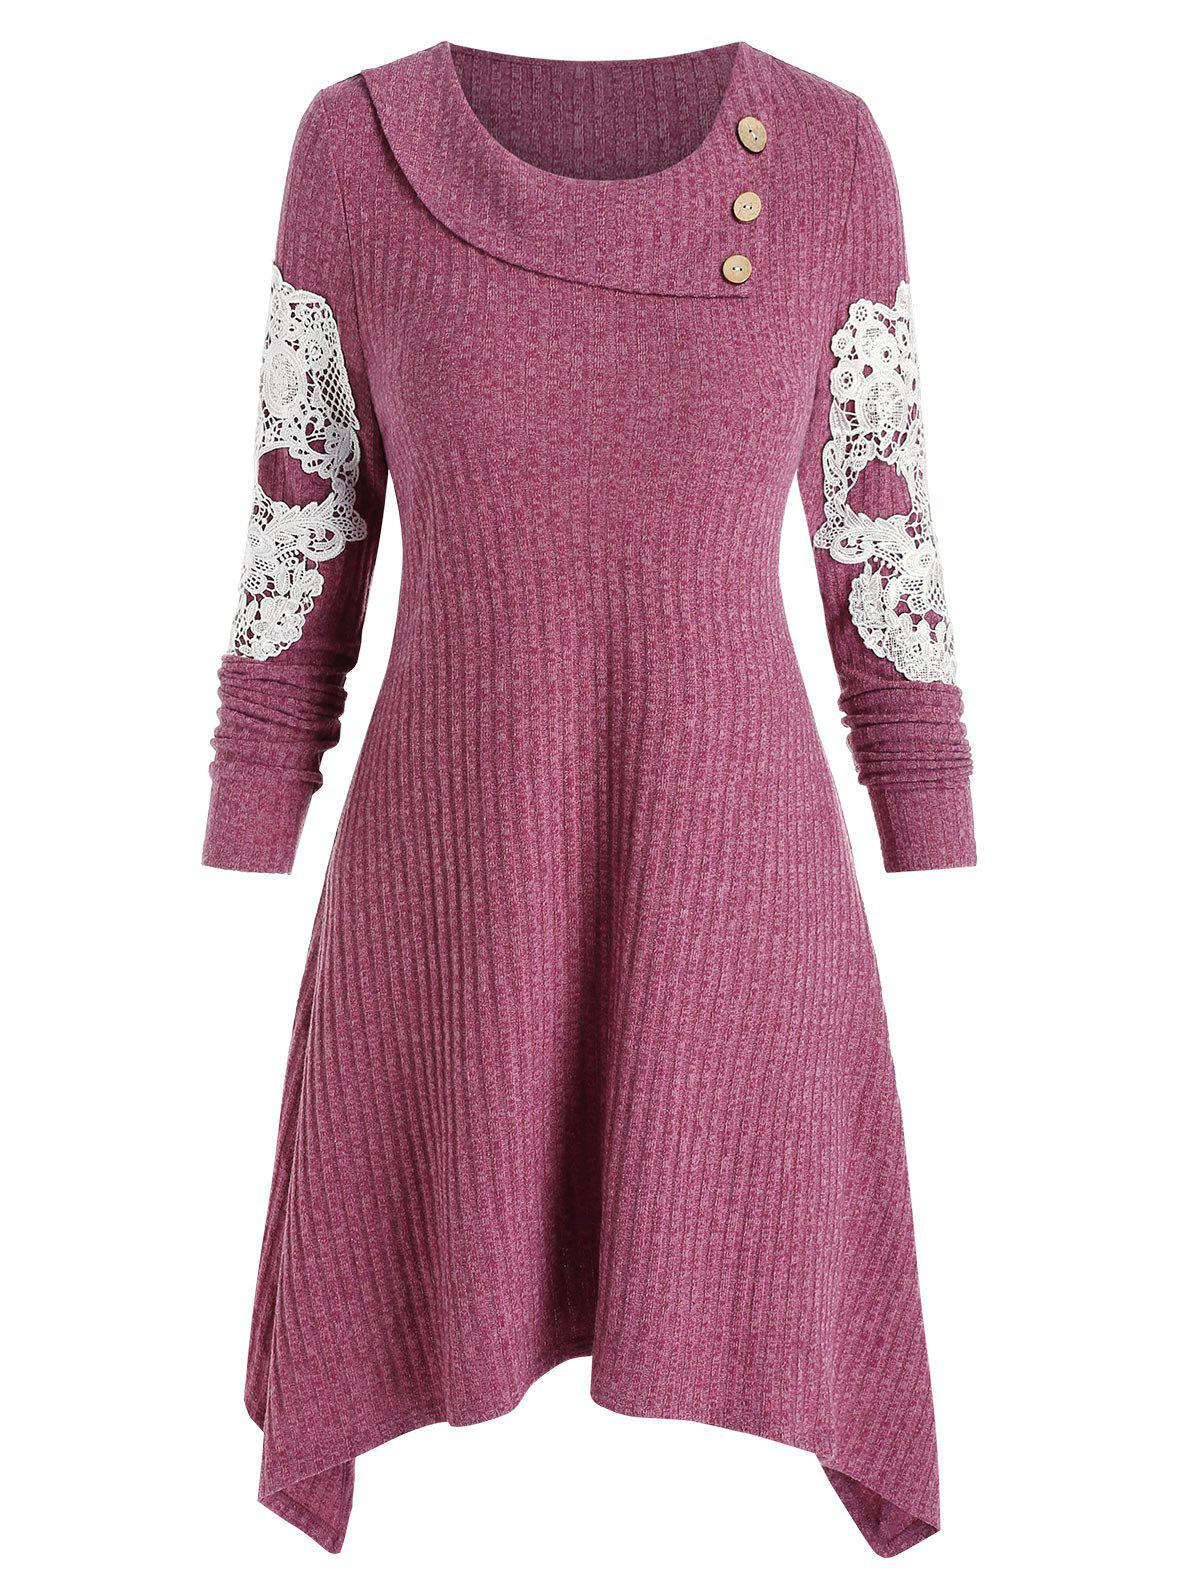 Applique Embroidered Skull Buttons Knitted Dress - LIPSTICK PINK XL